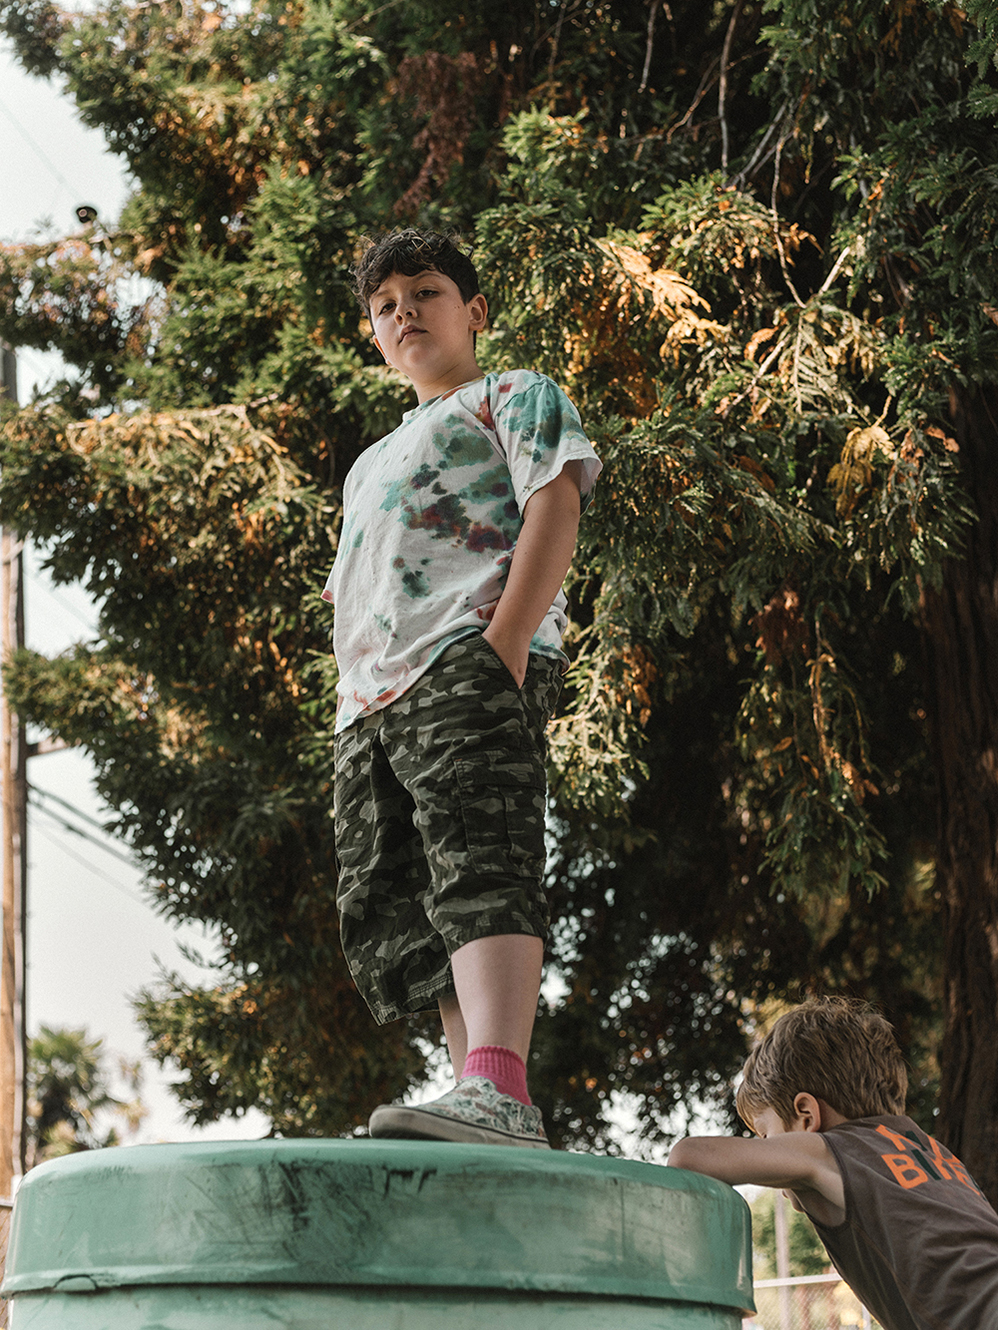 James,8, transgender boy, Bay Area California